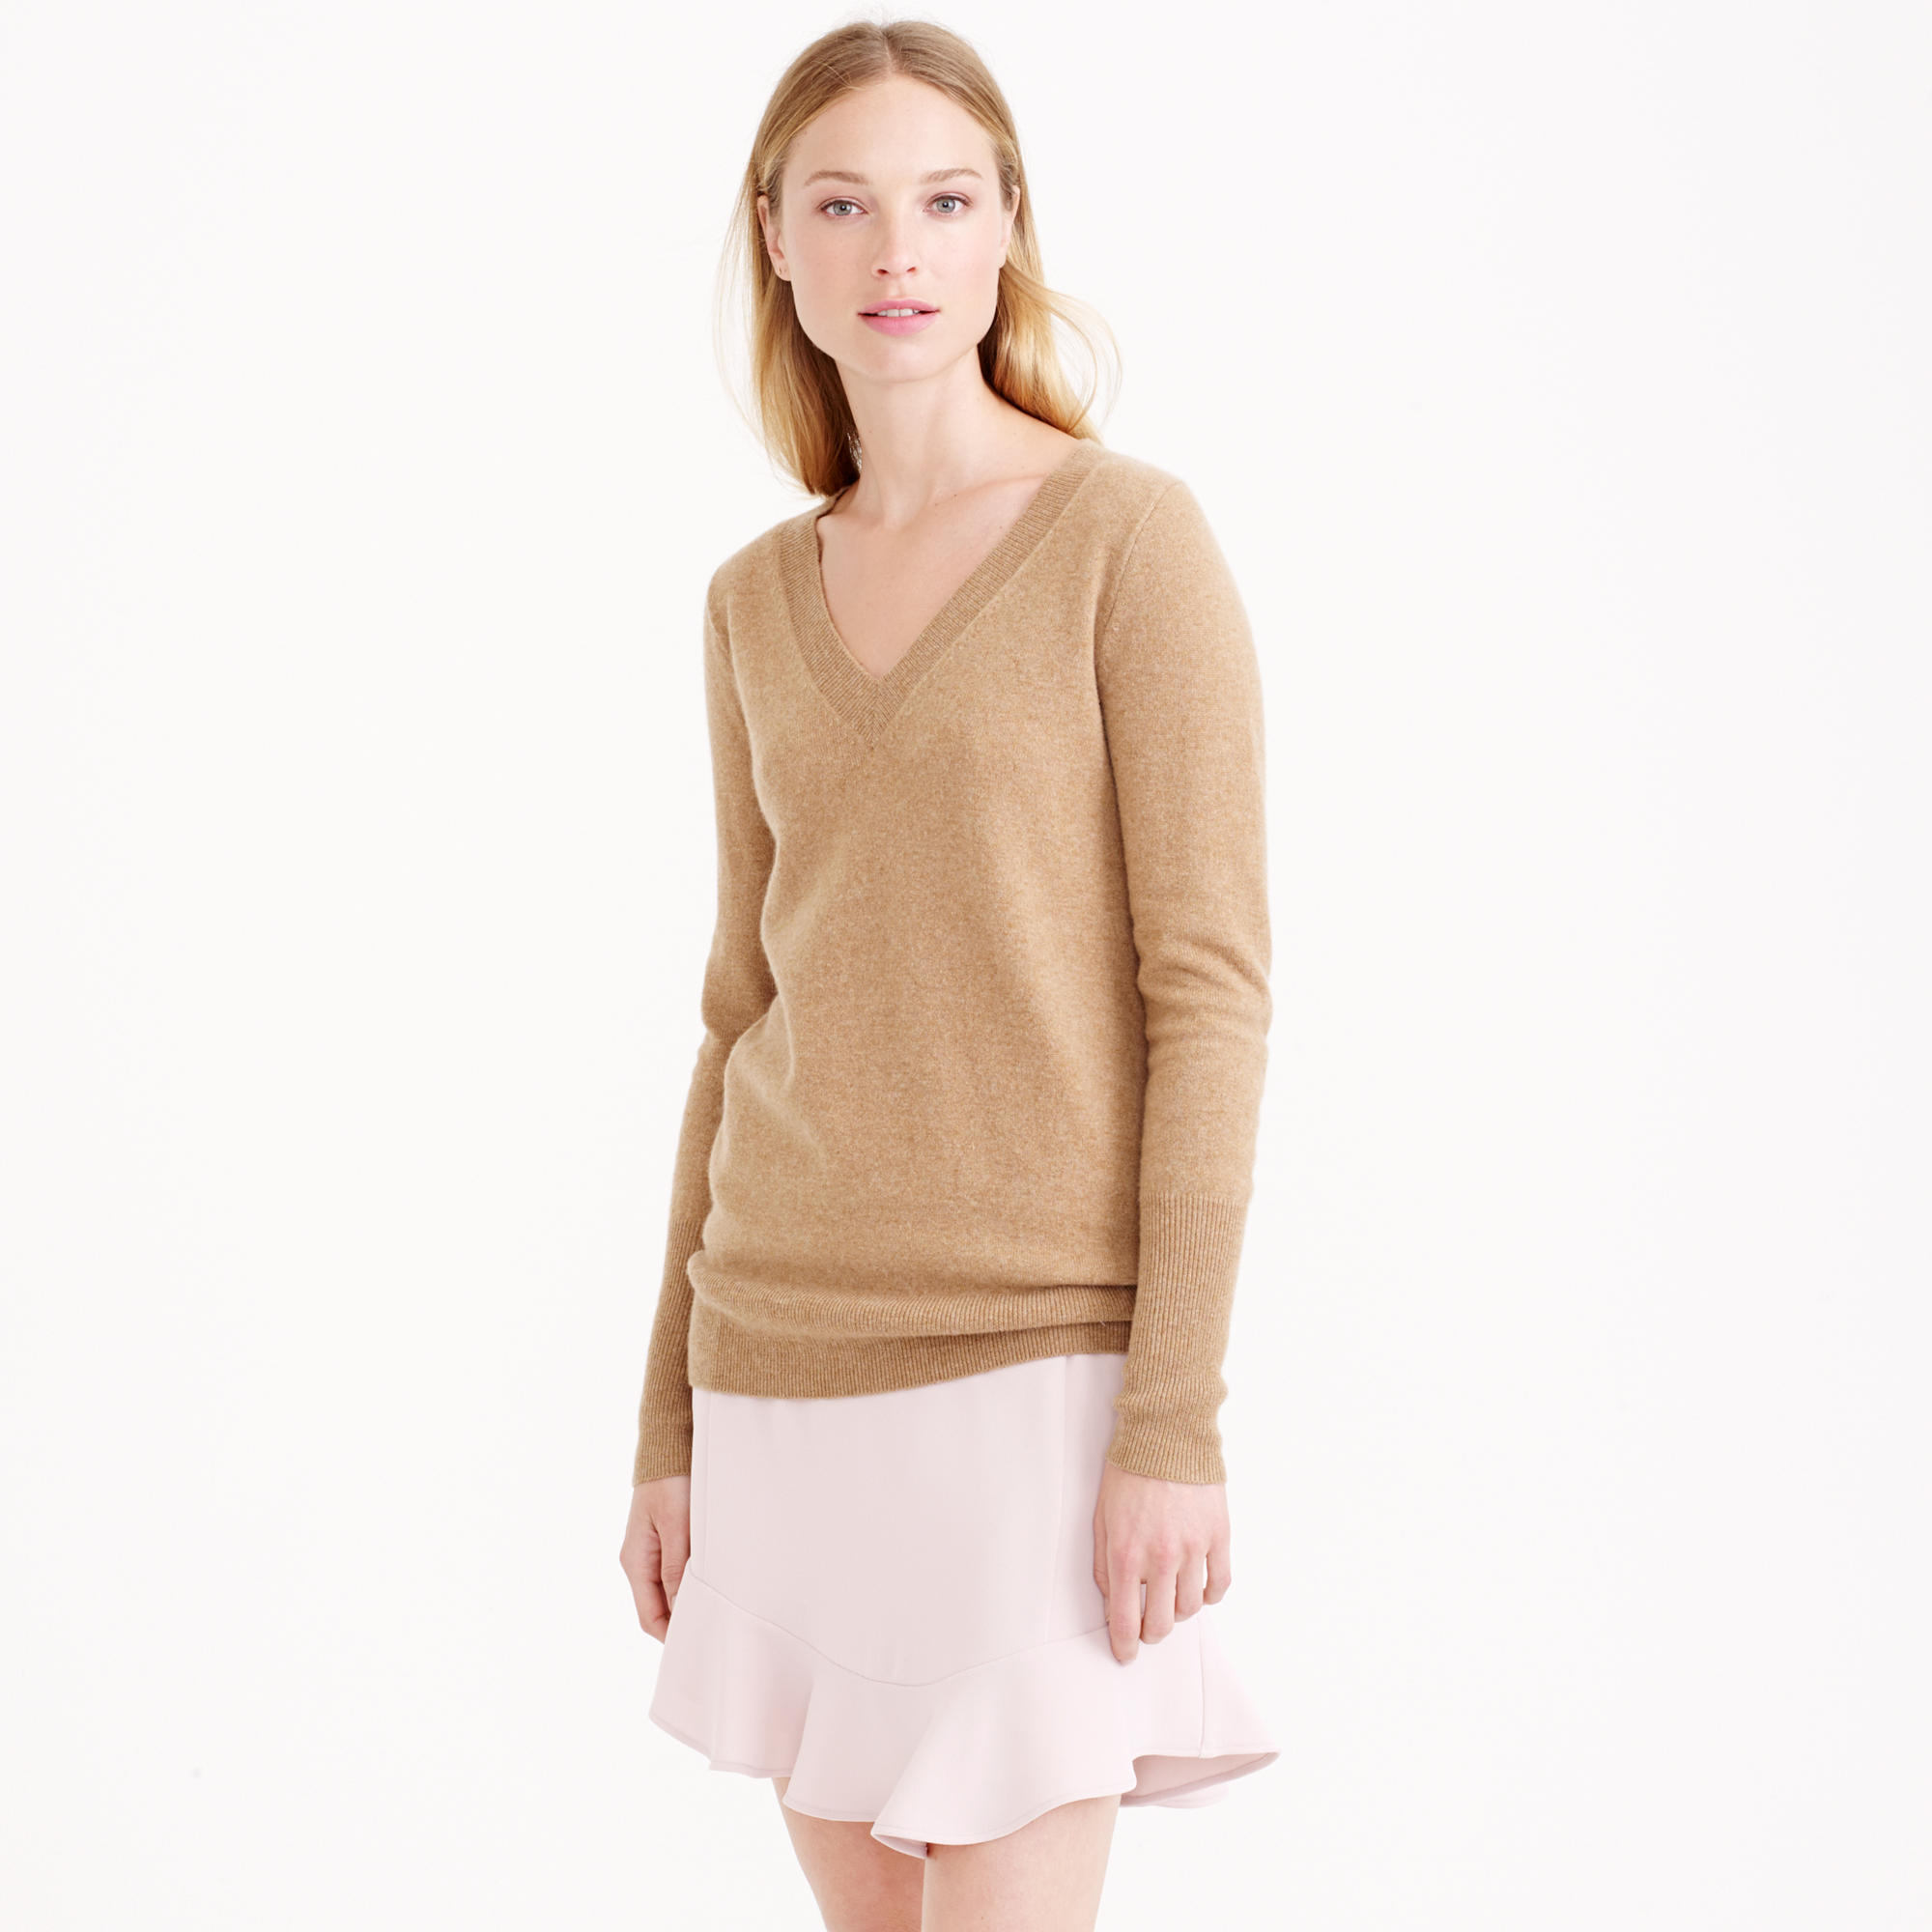 J.crew Collection Cashmere V-neck Sweater in Brown | Lyst